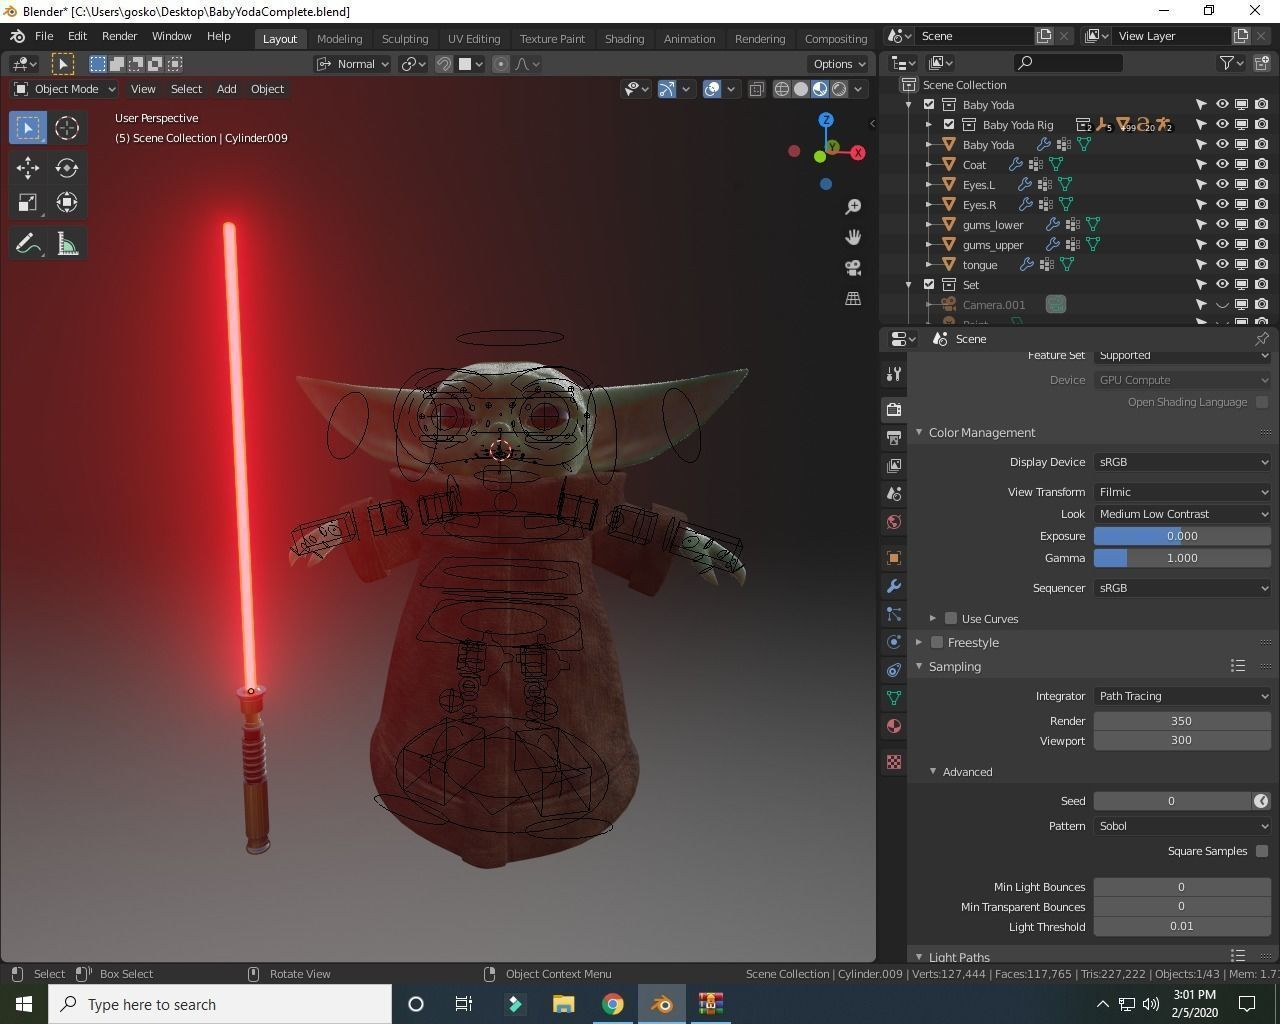 baby-yoda-rigged-3d-model-low-poly-rigged-fbx-c4d-blend (3).jpg Télécharger fichier STL gratuit Baby Yoda Rigged Low-poly 3D model • Plan pour impression 3D, Anxhelo24j